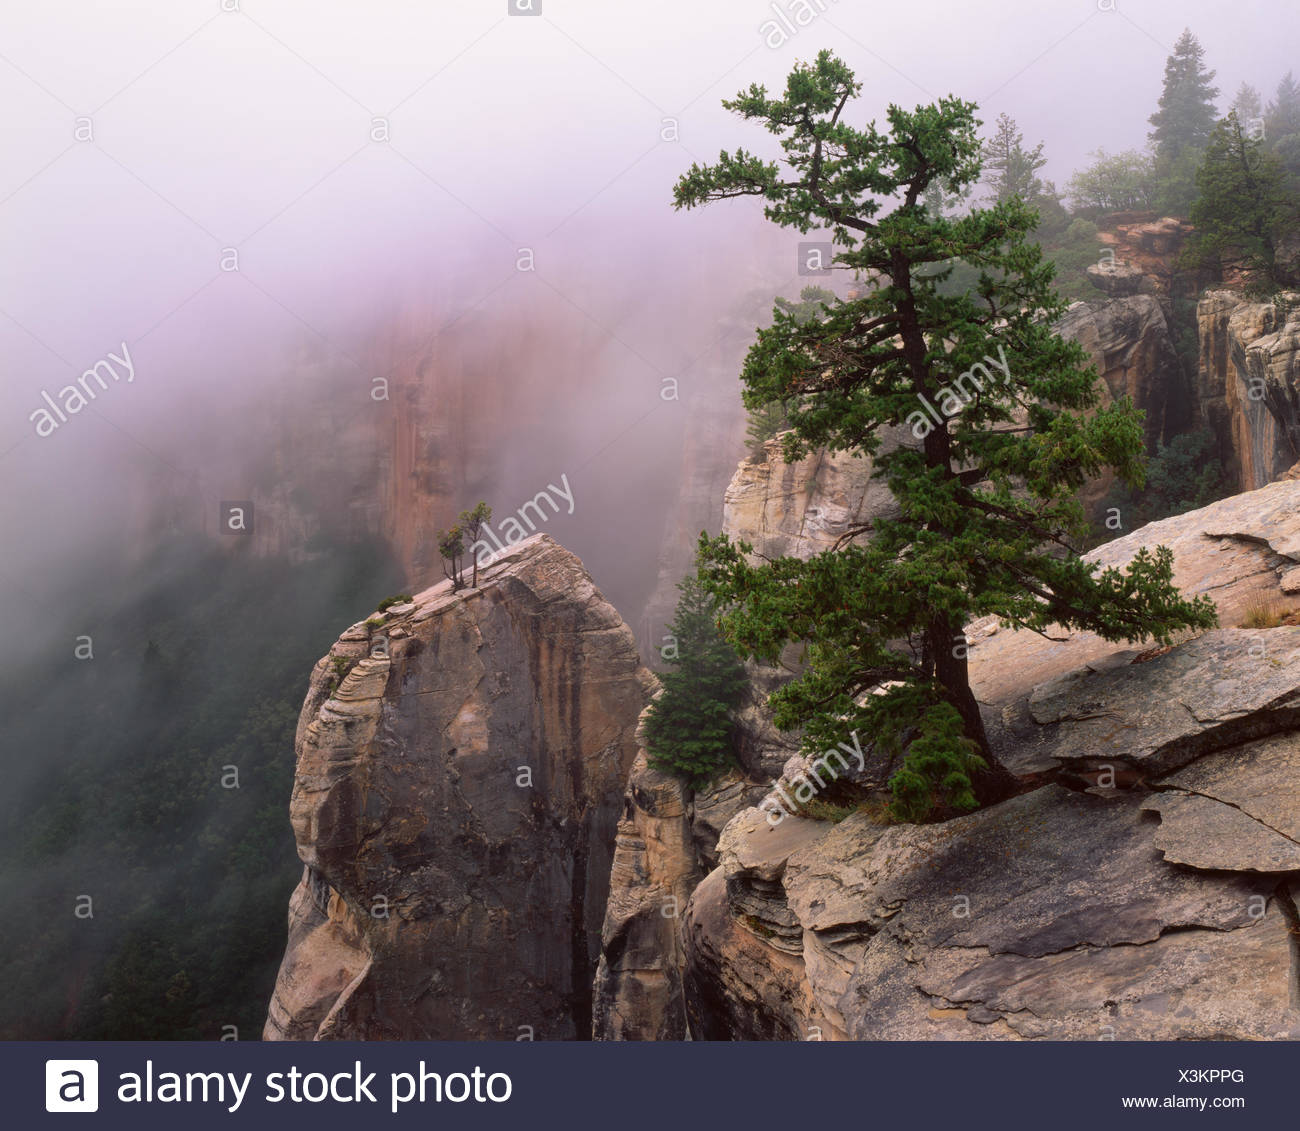 Pinyon pine (Pinus edulis) and Utah juniper (Juniperus osteosperma) on kaibab limestone spires in morning fog, North Rim, North Kalbab Trail, Grand Canyon National Park, Arizona, USA - Stock Image